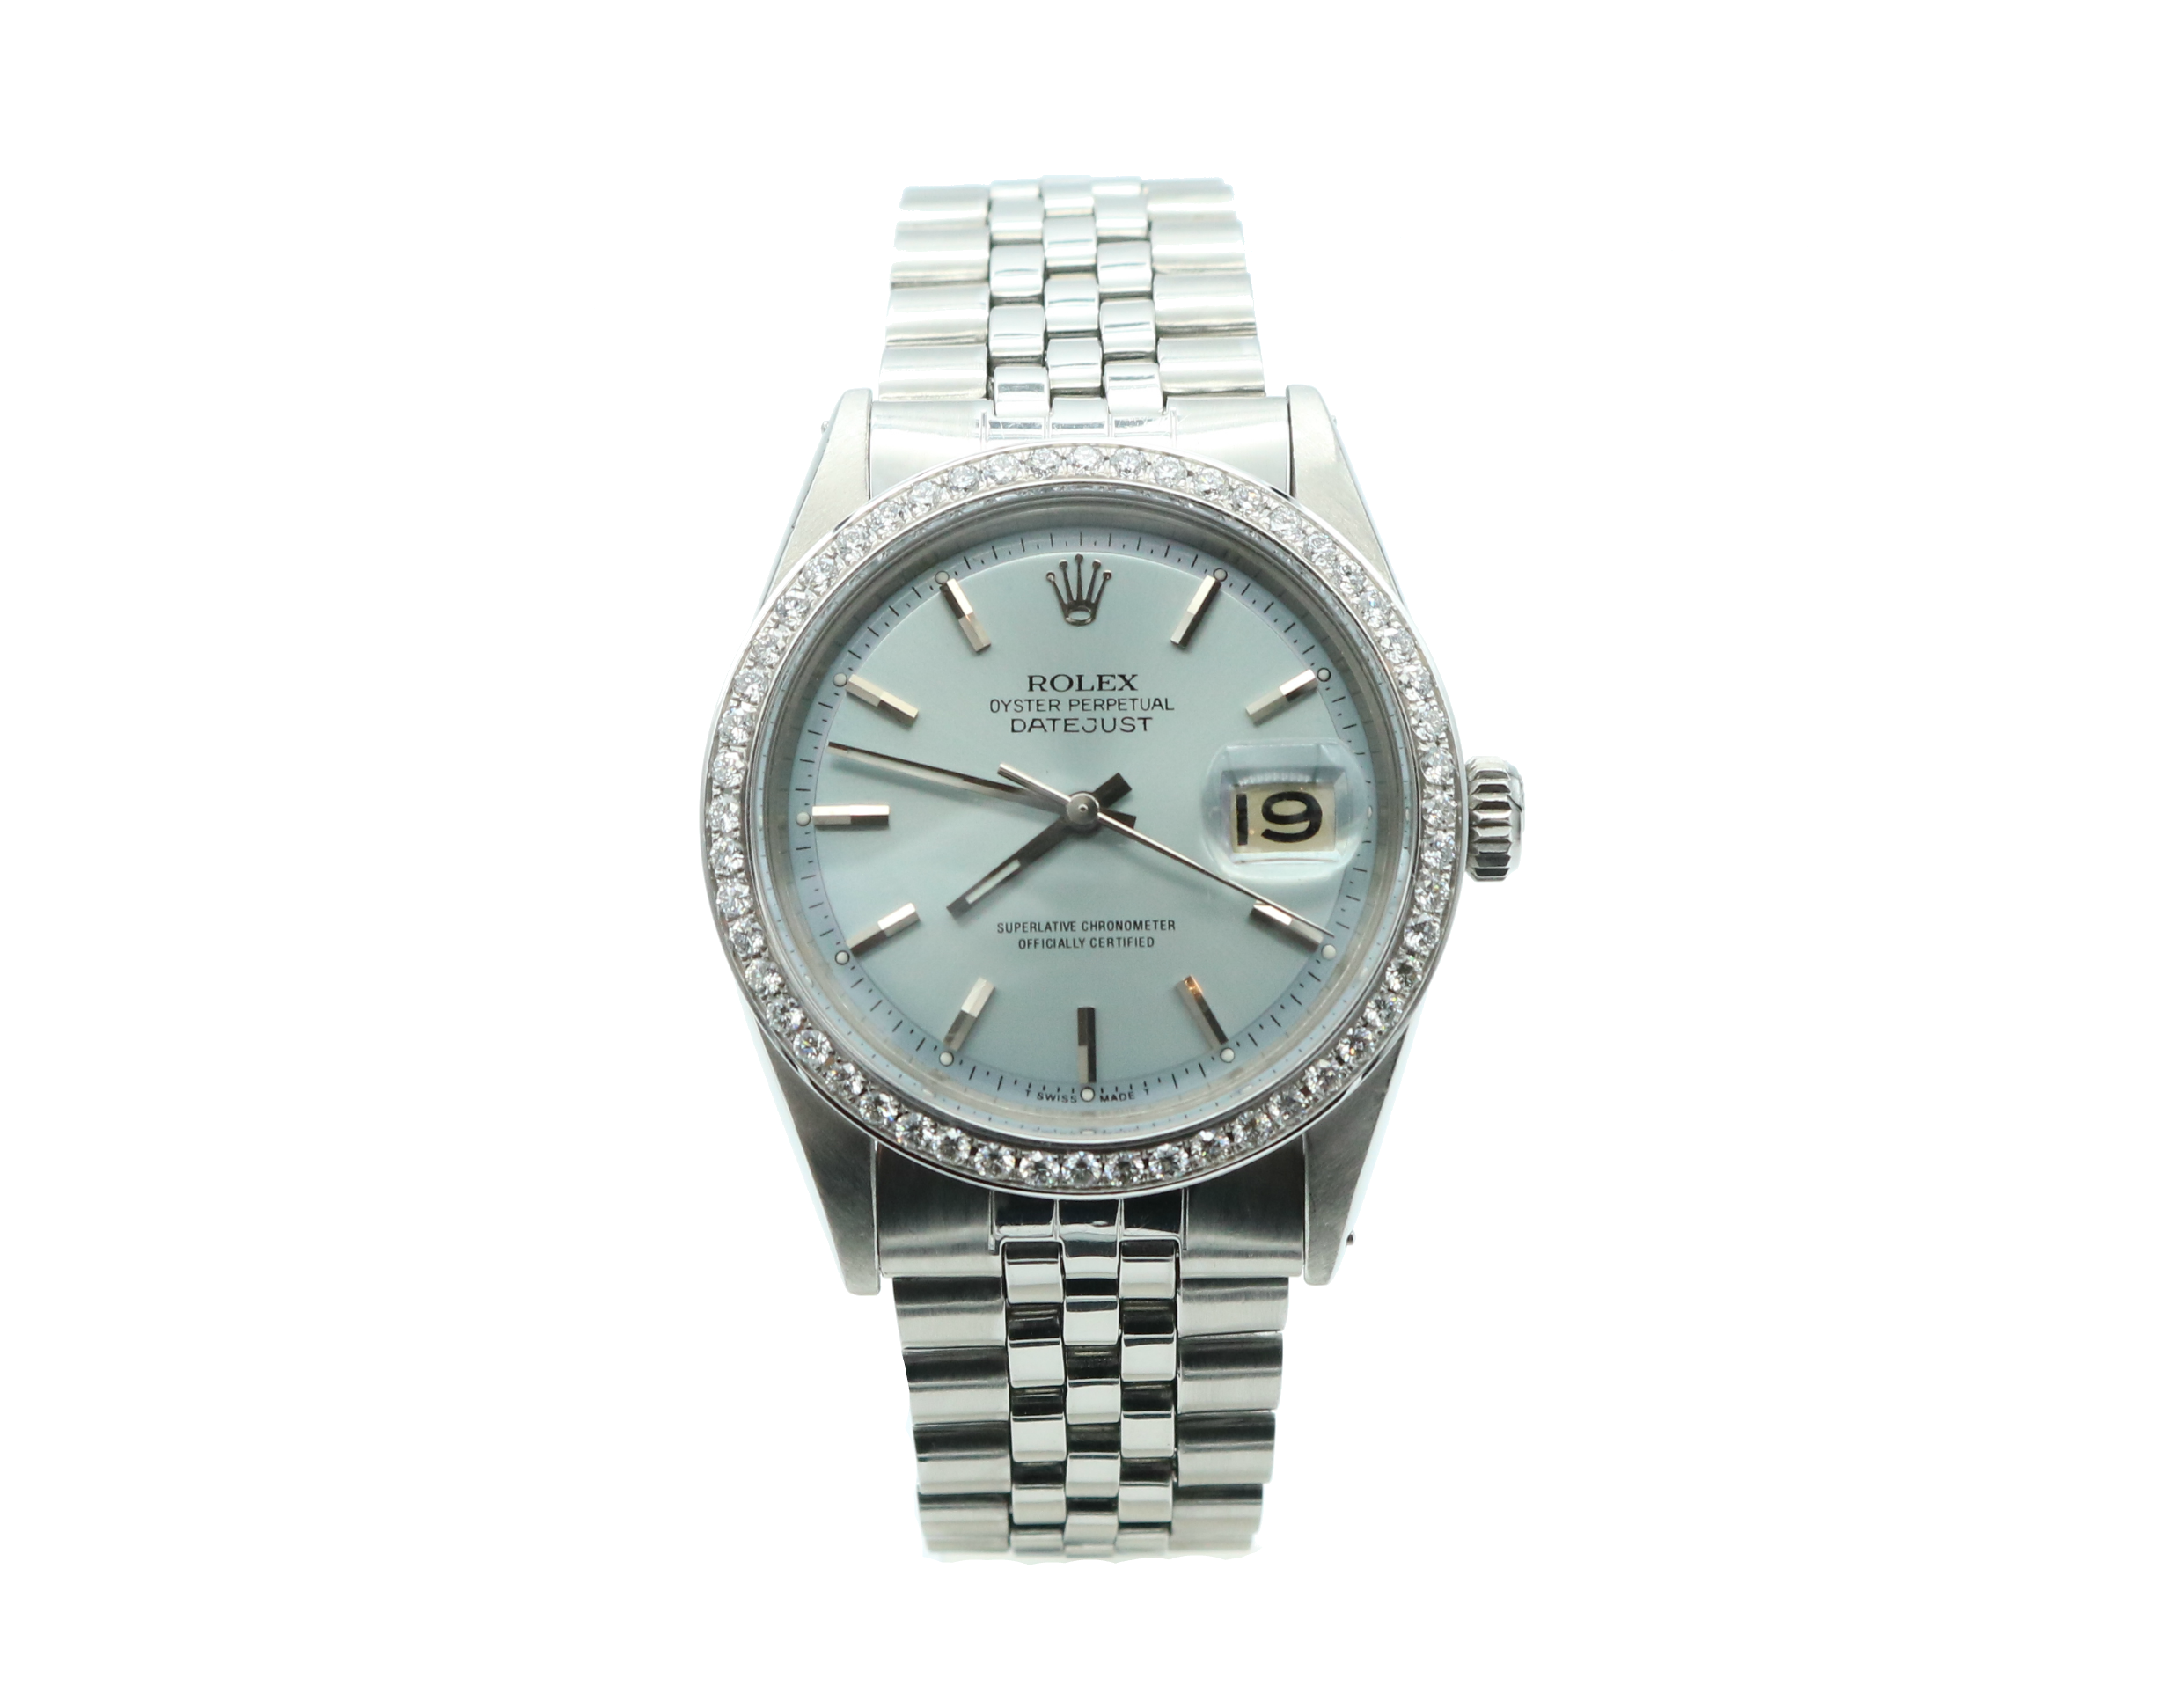 excellent factory preowned wristwatch collectors watch of itm pearl gold ebay markers hand lady datejust mother dial condition hour watches second diamond pearlmaster ladies white rolex